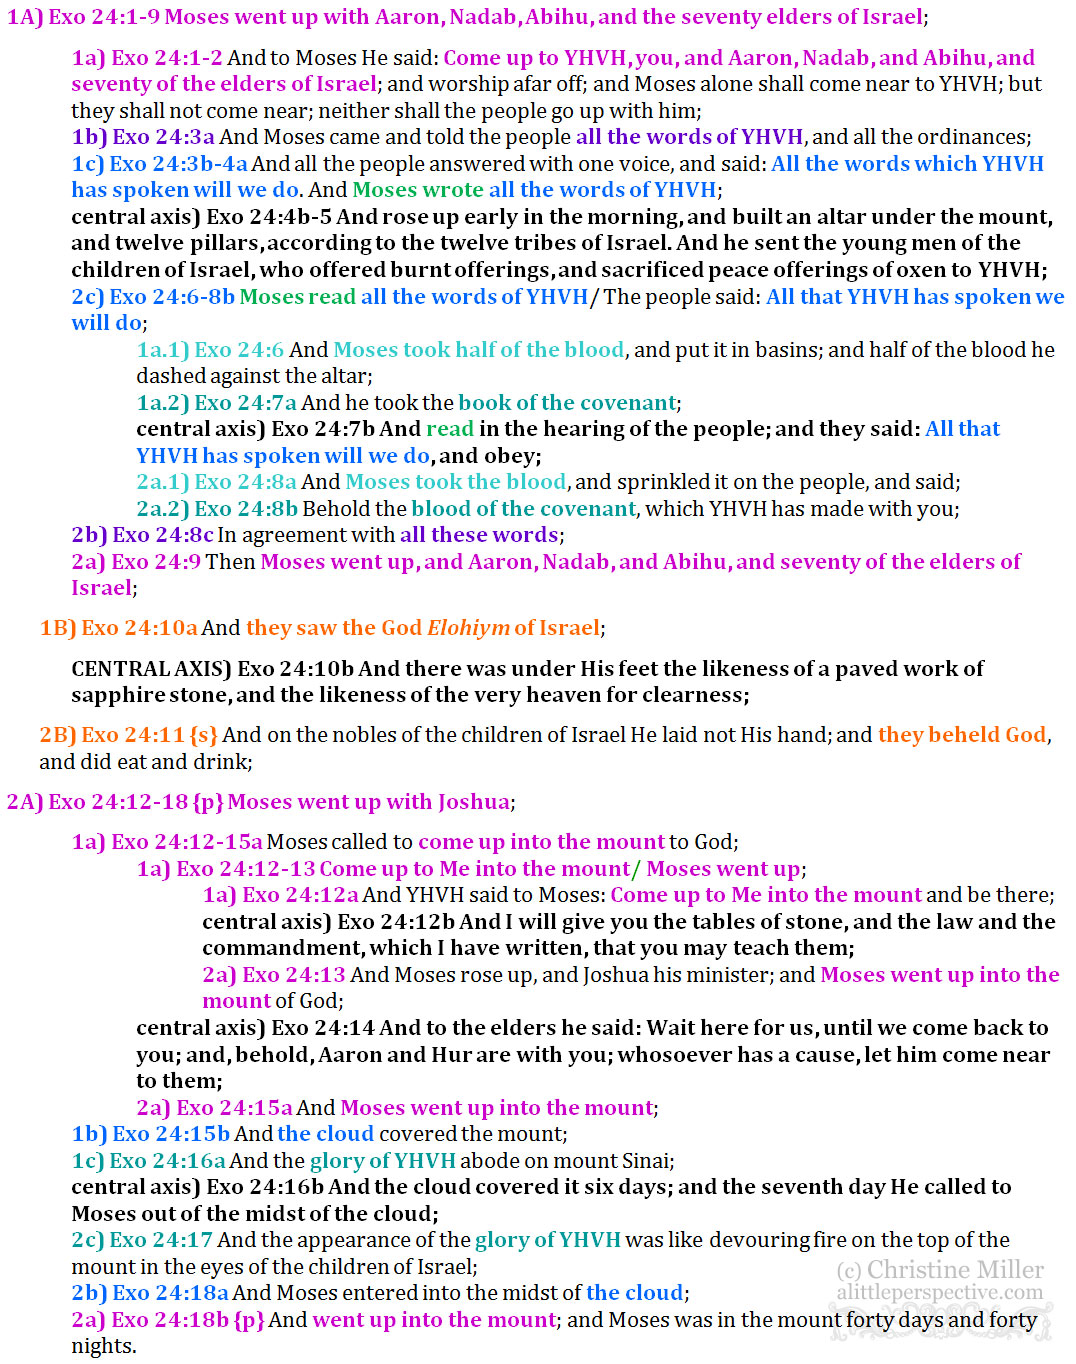 Exo 24:1-18 {s+p} chiasm | christine's bible study at alittleperspective,com